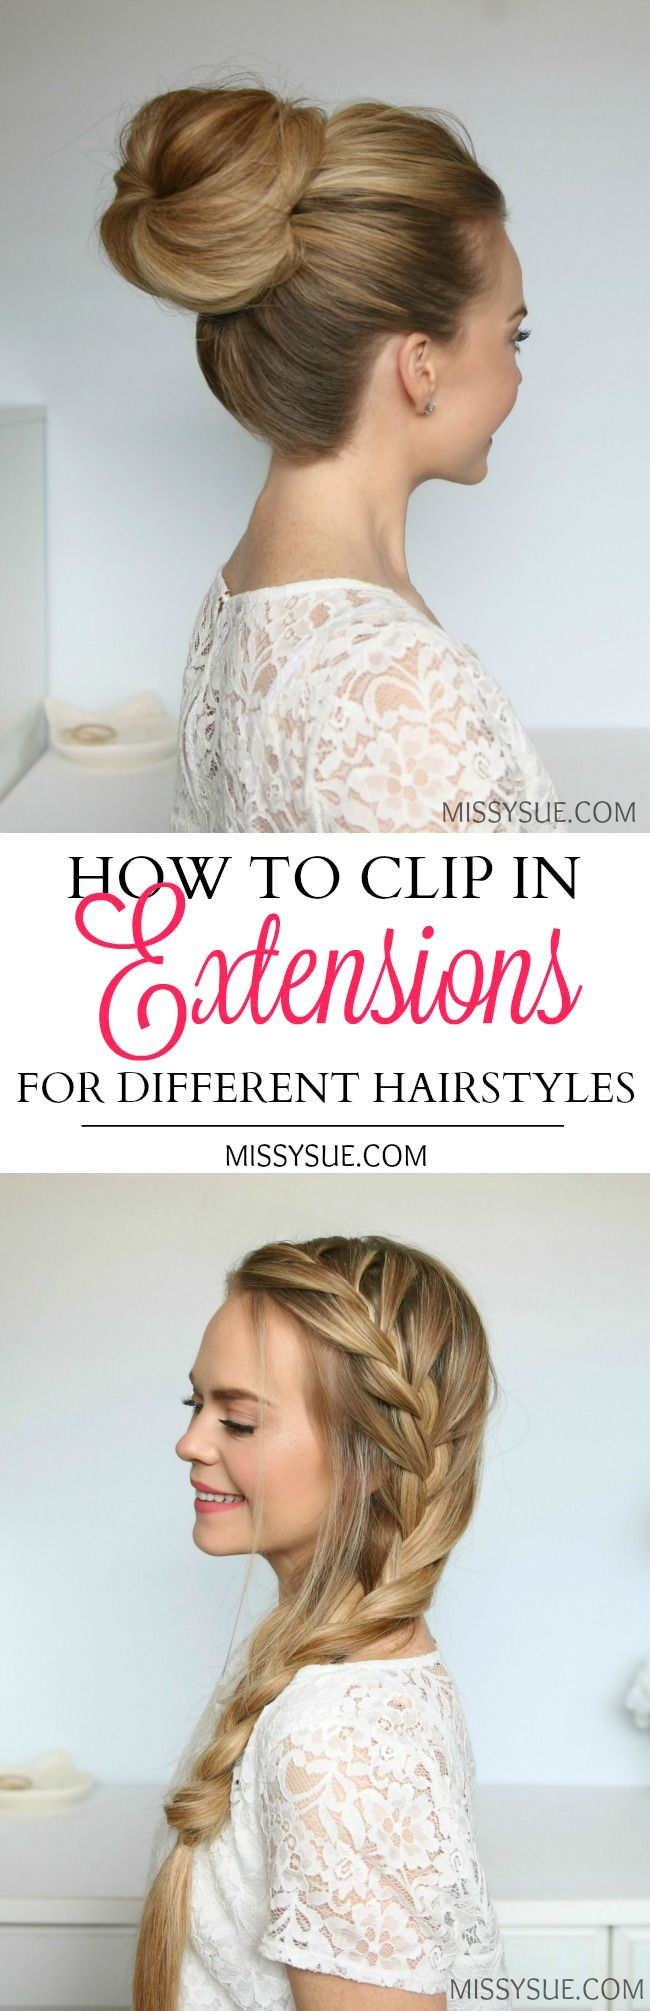 How to Clip in Extensions for Different Hairstyles – MISSY SUE ...